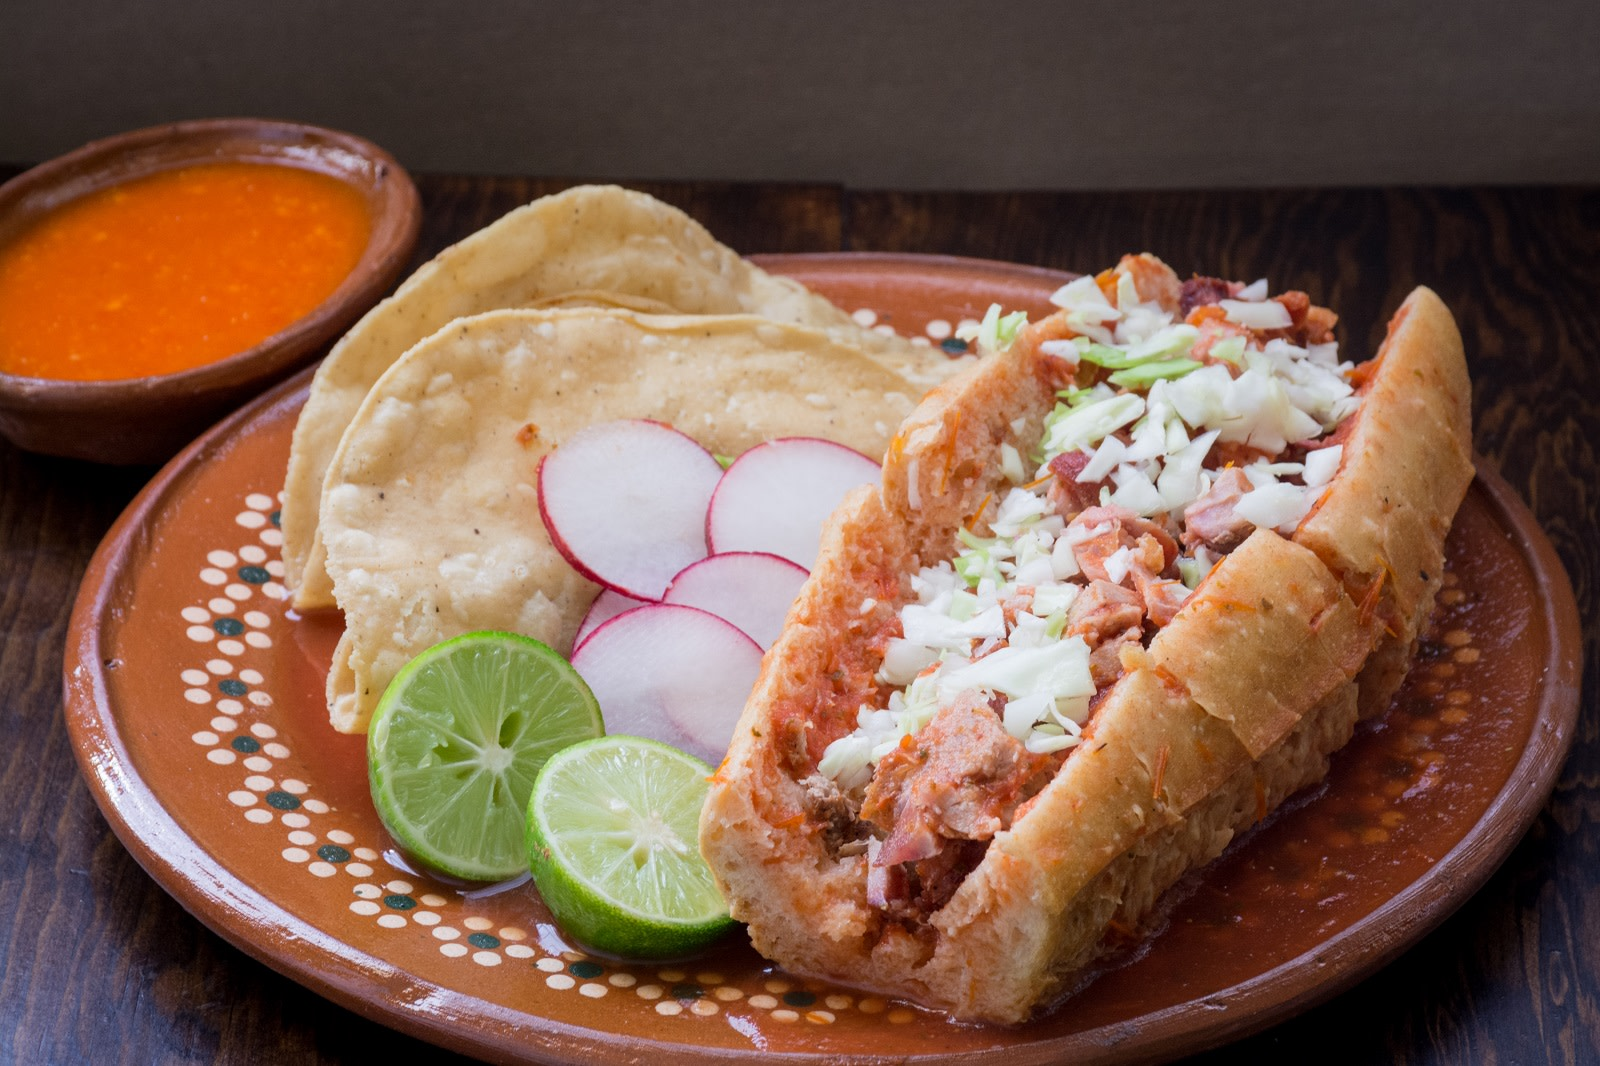 Tortas - A bun stuffed with meat and vegetables and topped with shredded cabbage, cheese, and sour cream. - makes it to our Top 10 food destinations